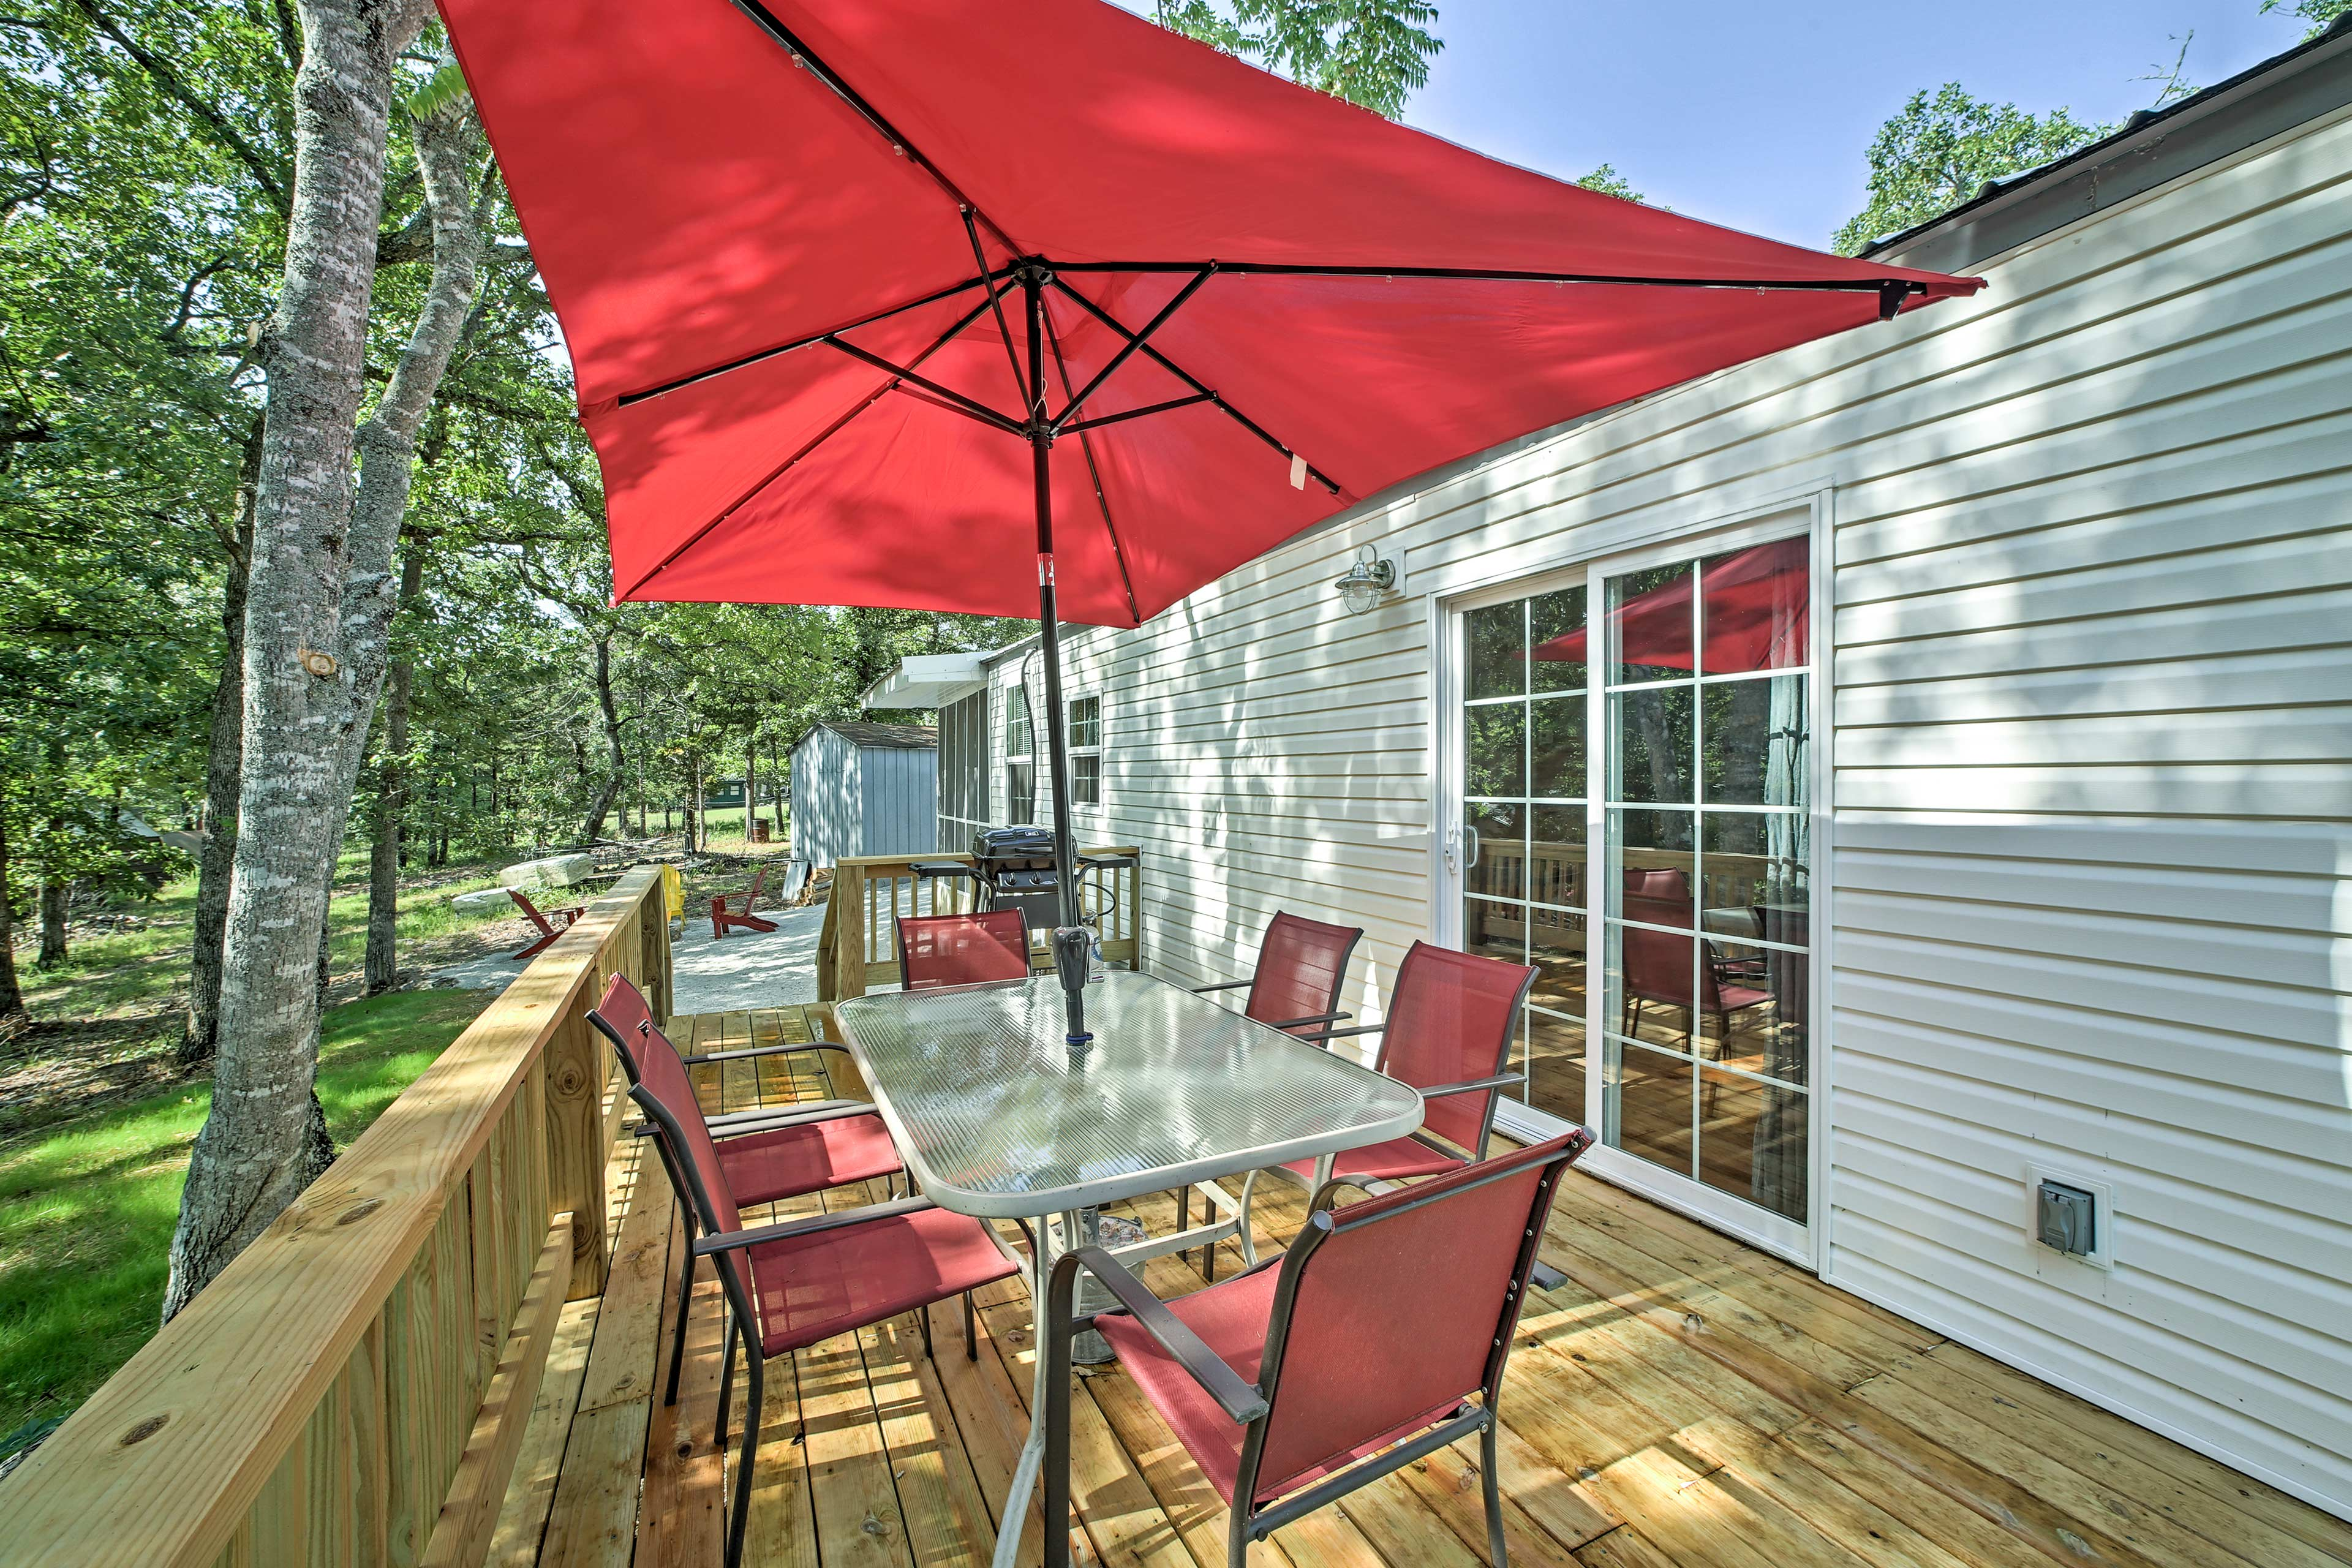 You can also enjoy some outdoor time on the furnished deck!